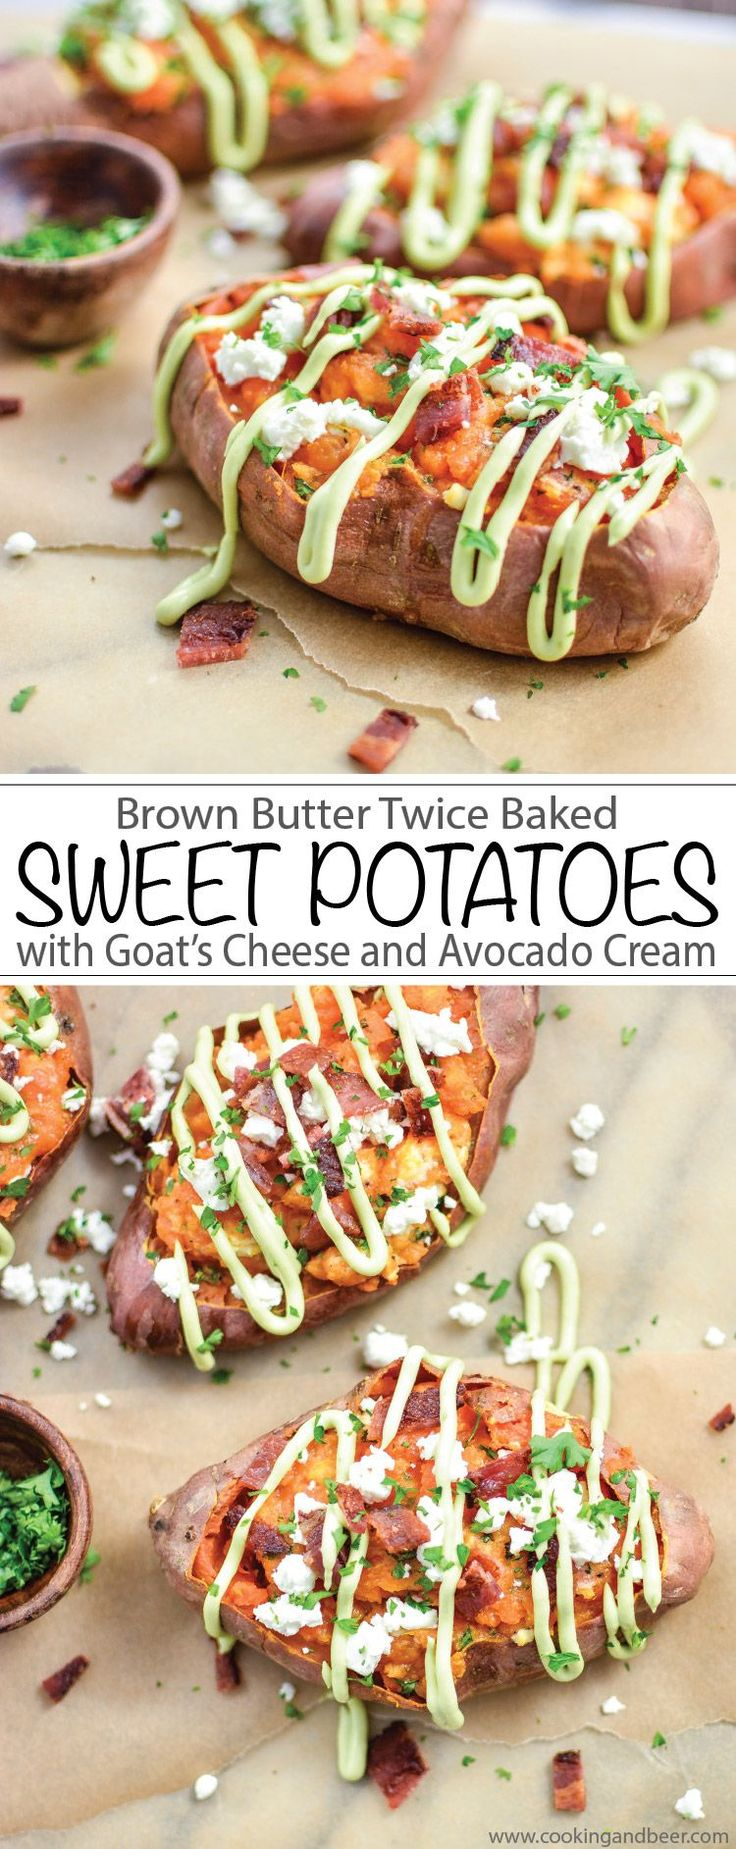 Brown Butter Twice Baked Sweet Potatoes | Recipe featured on www.instagram.com/easyfamilyrecipes Follow along for easy recipe ideas in your Instagram feed!